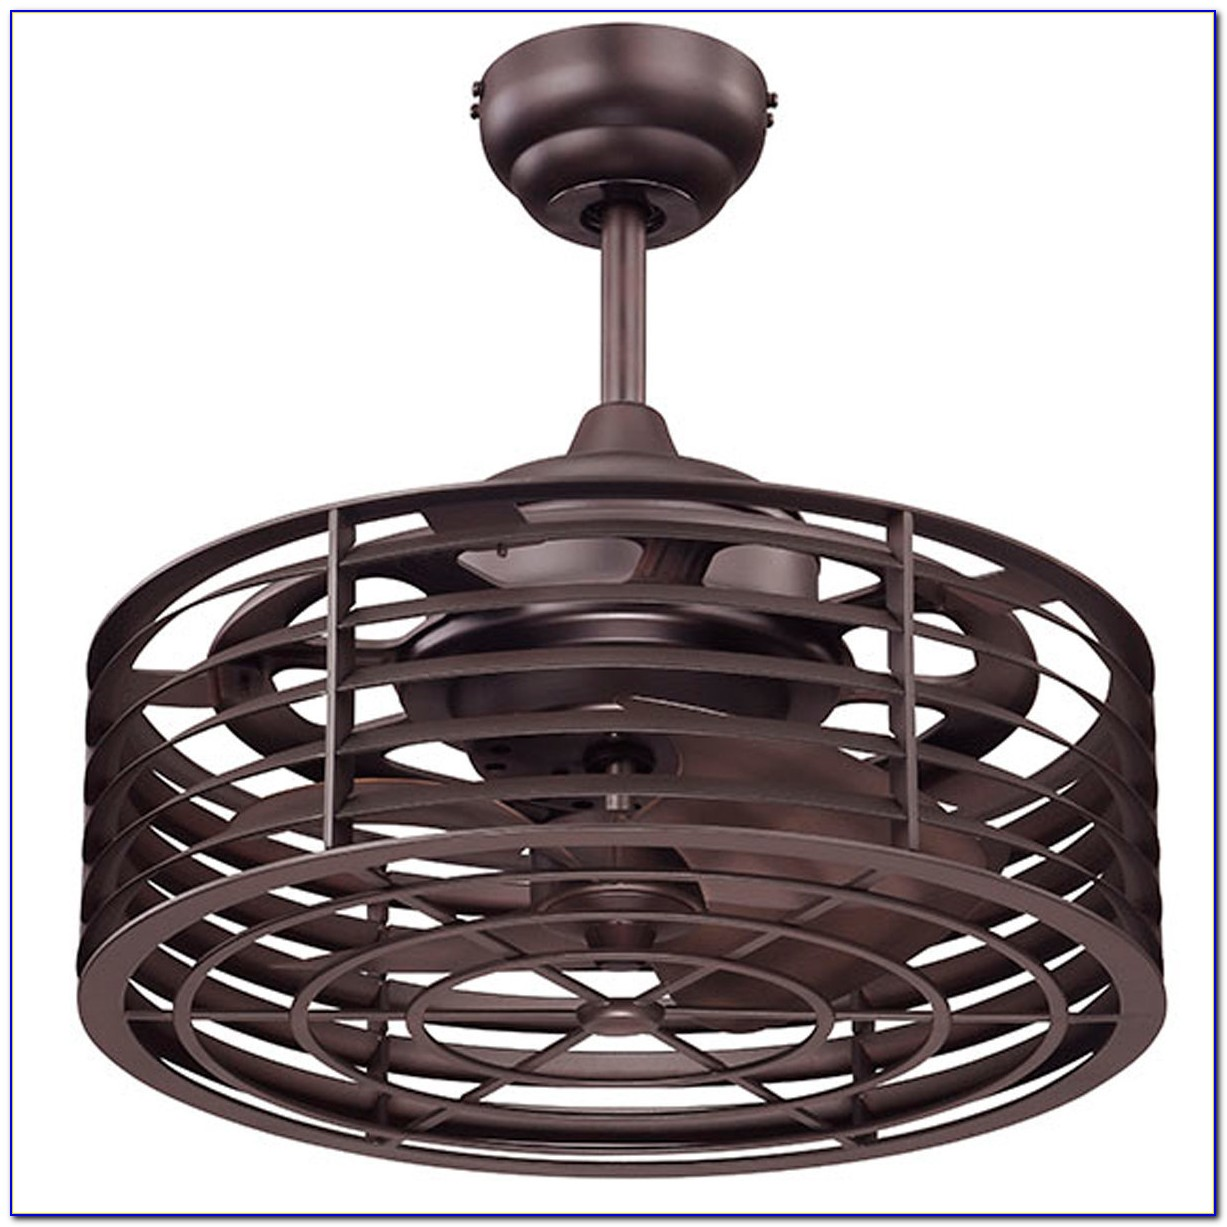 Flush Mount Caged Ceiling Fan With Light